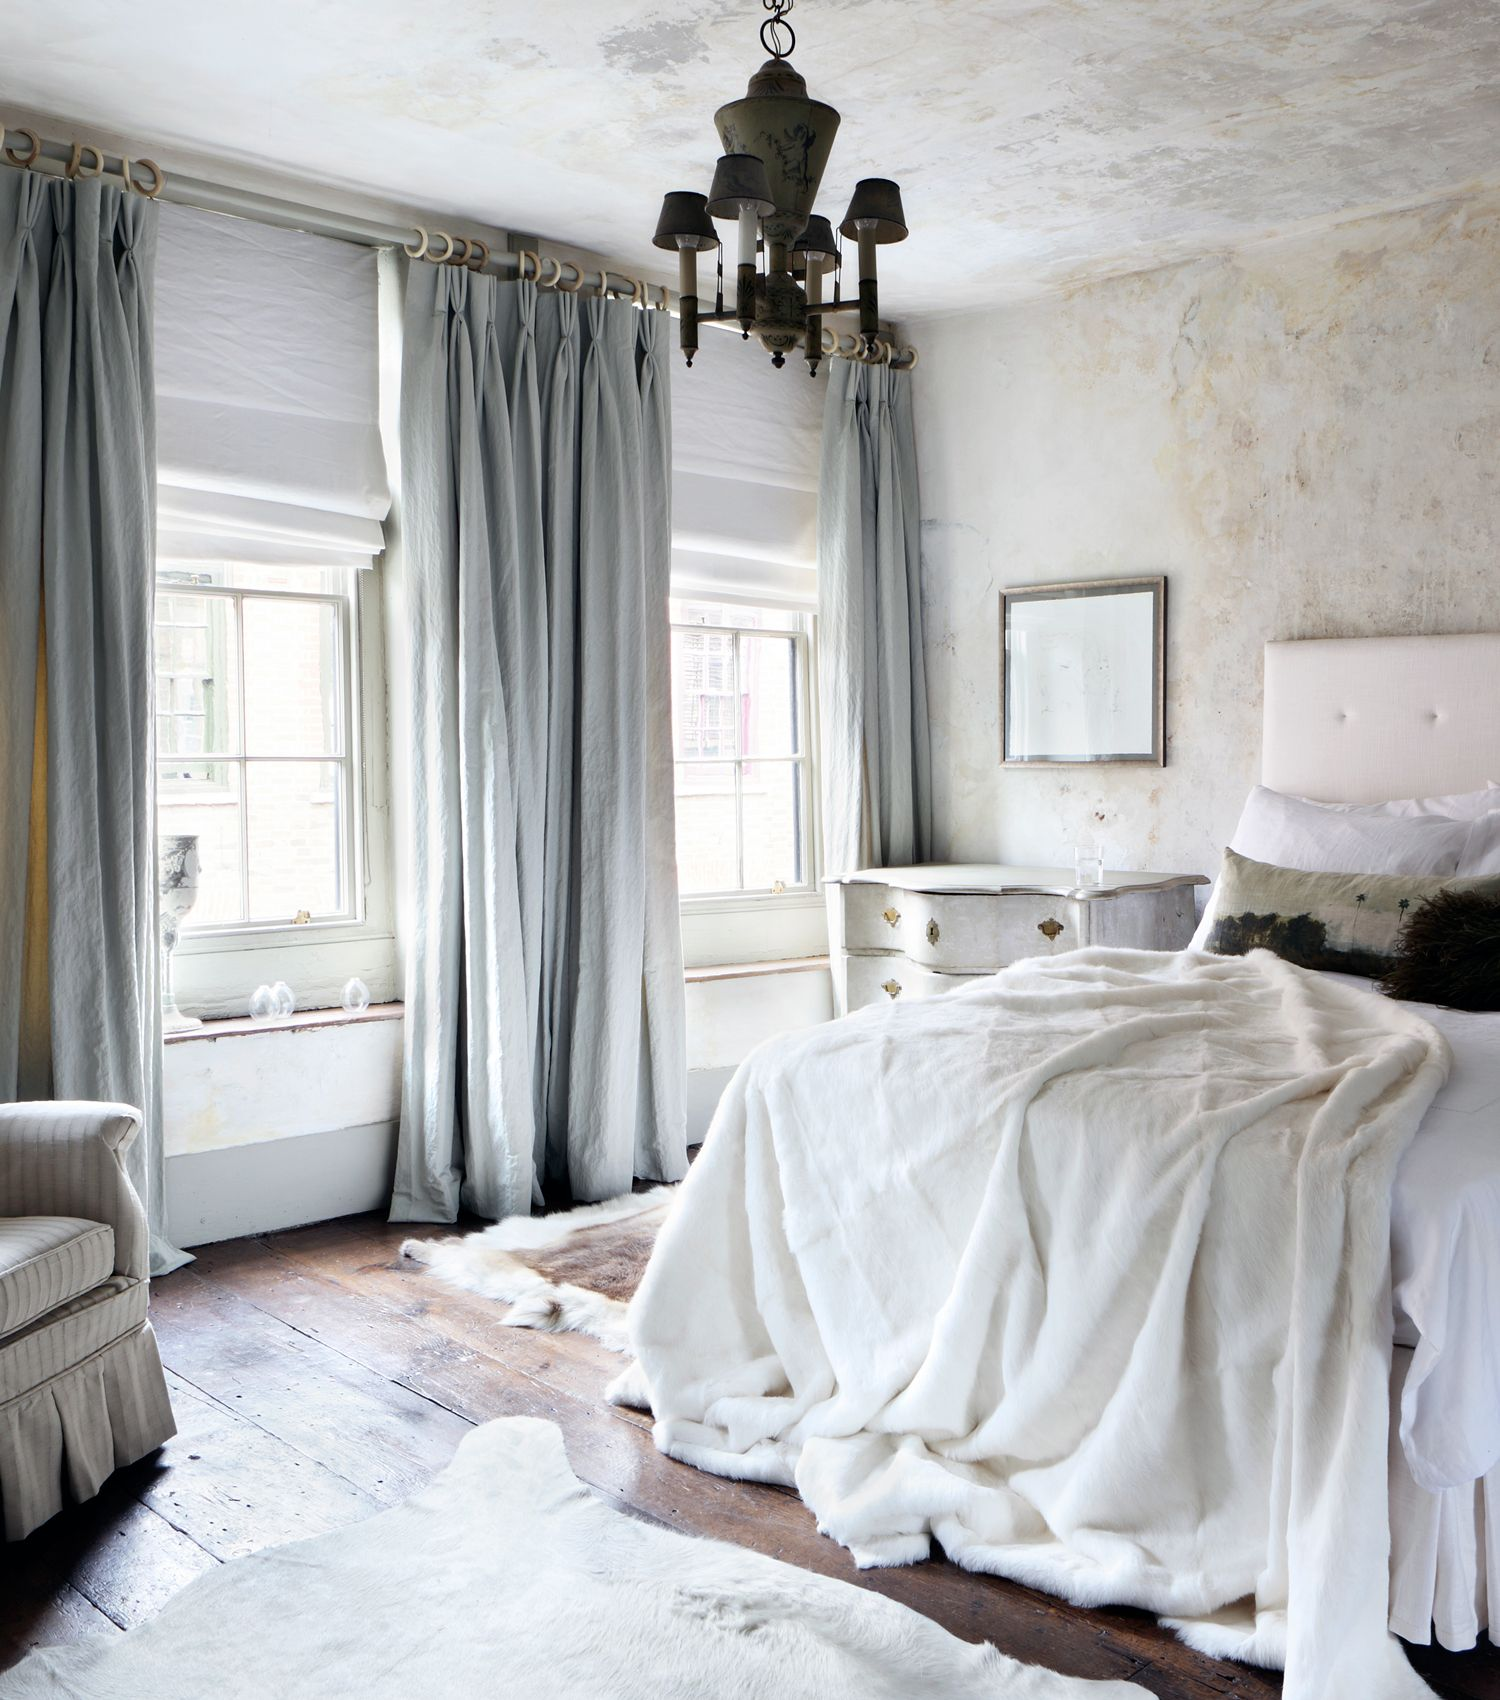 8 Clever And Cozy Fixes For Every Major Bedroom Complaint